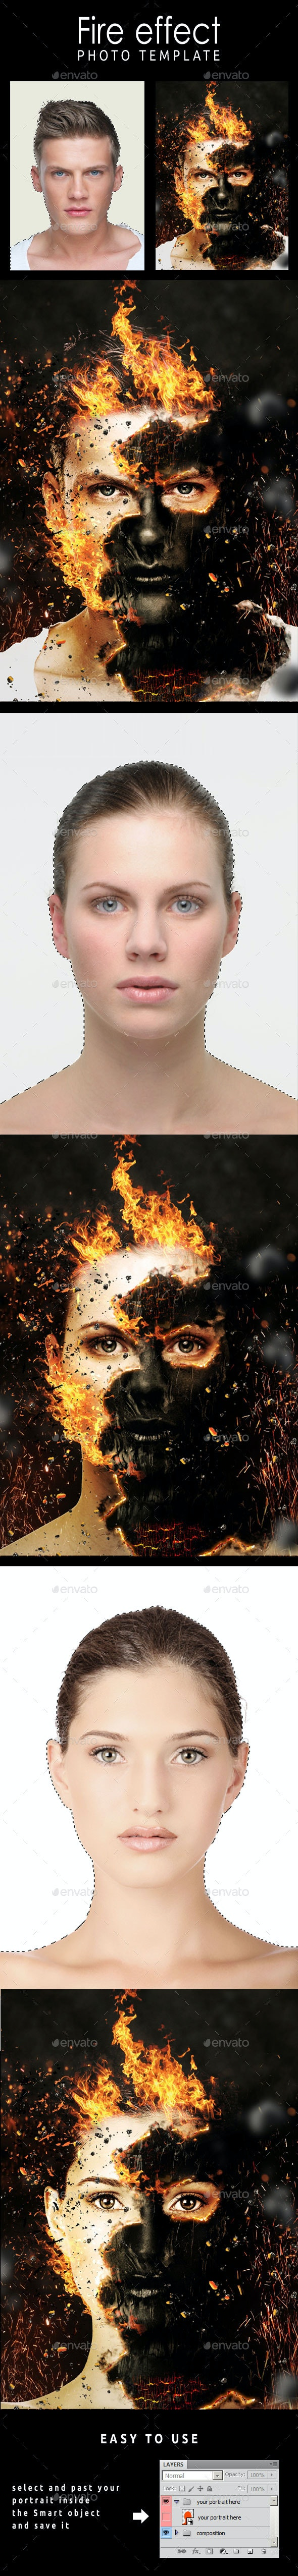 Fire Effect Photo Template - Photo Templates Graphics